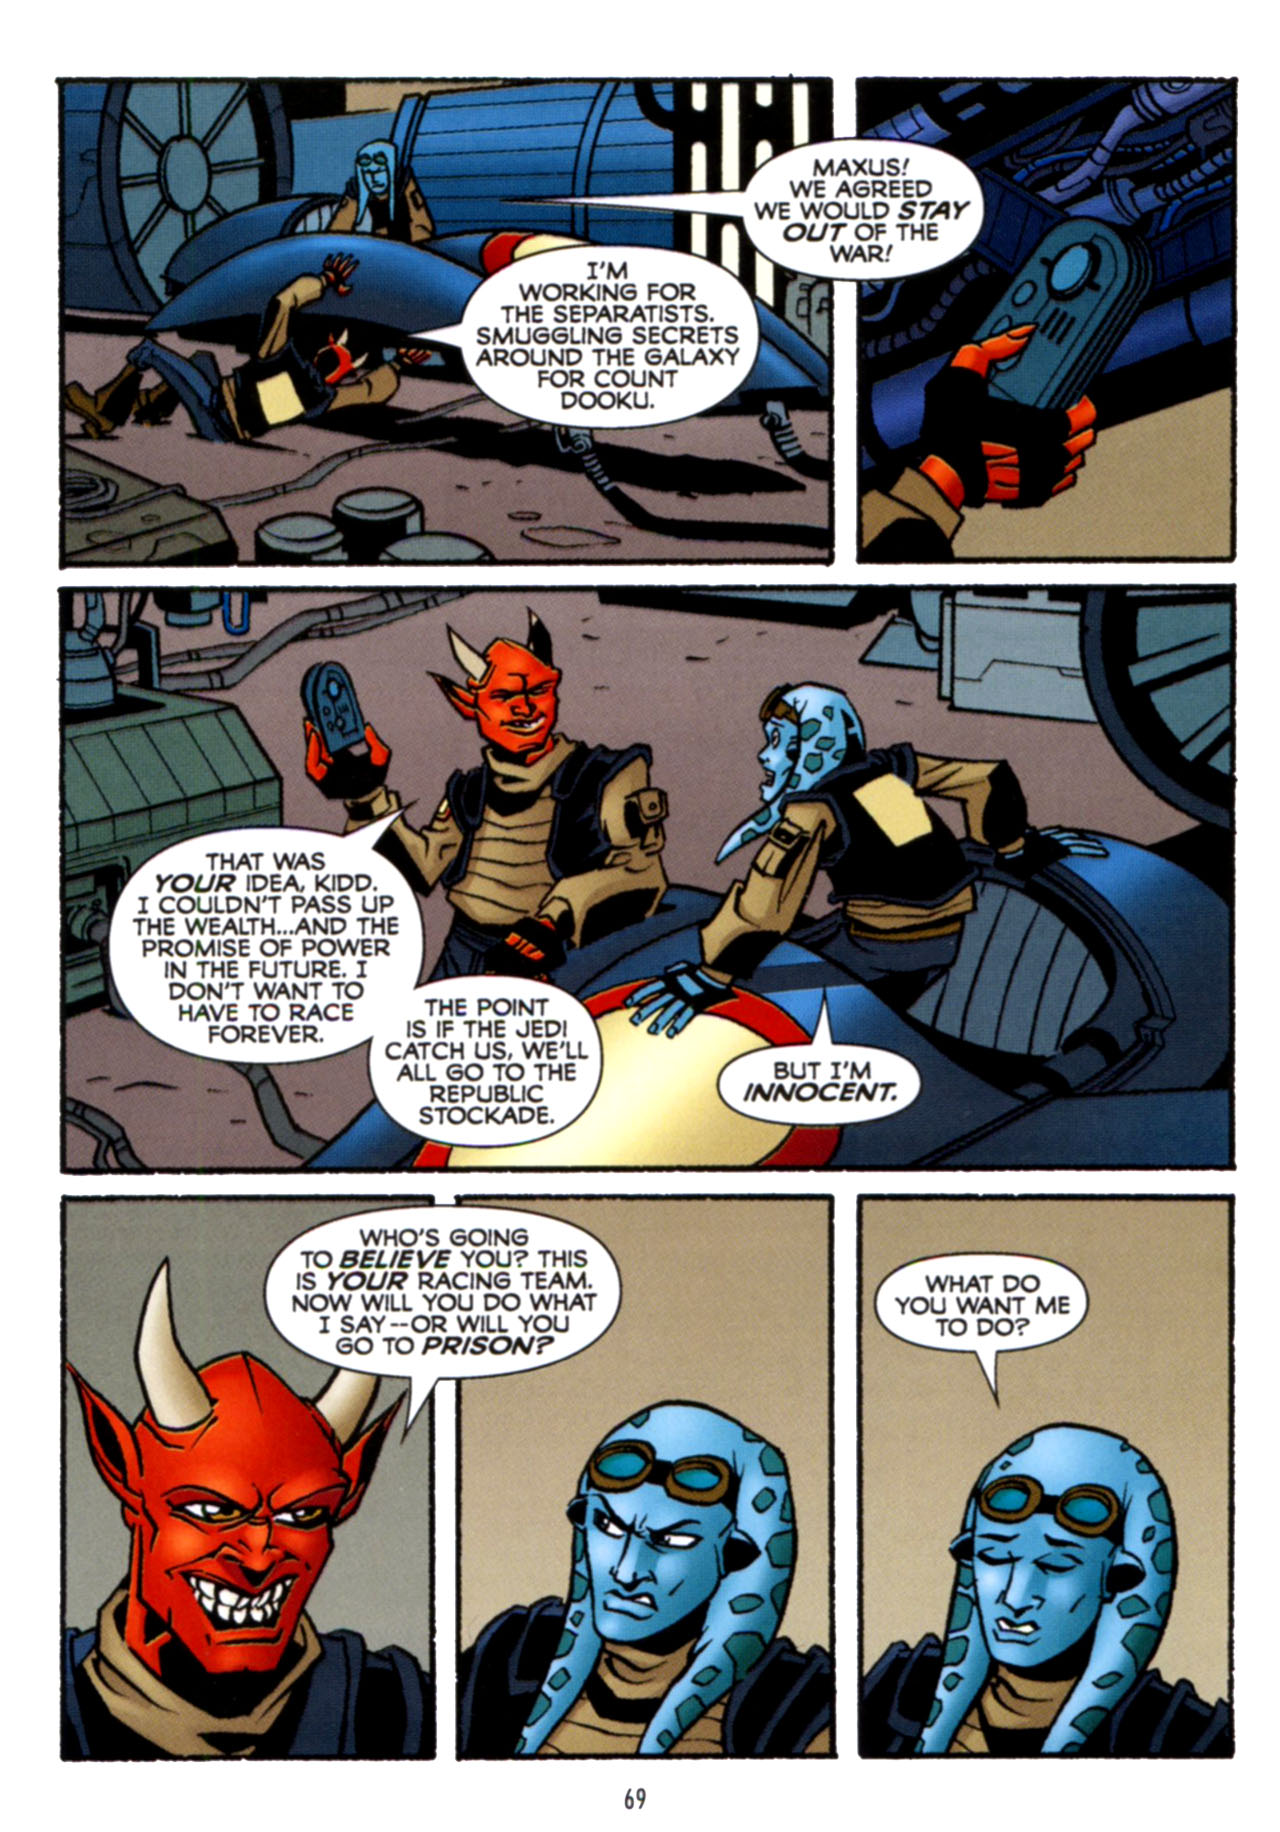 Read online Star Wars: The Clone Wars - Crash Course comic -  Issue # Full - 70